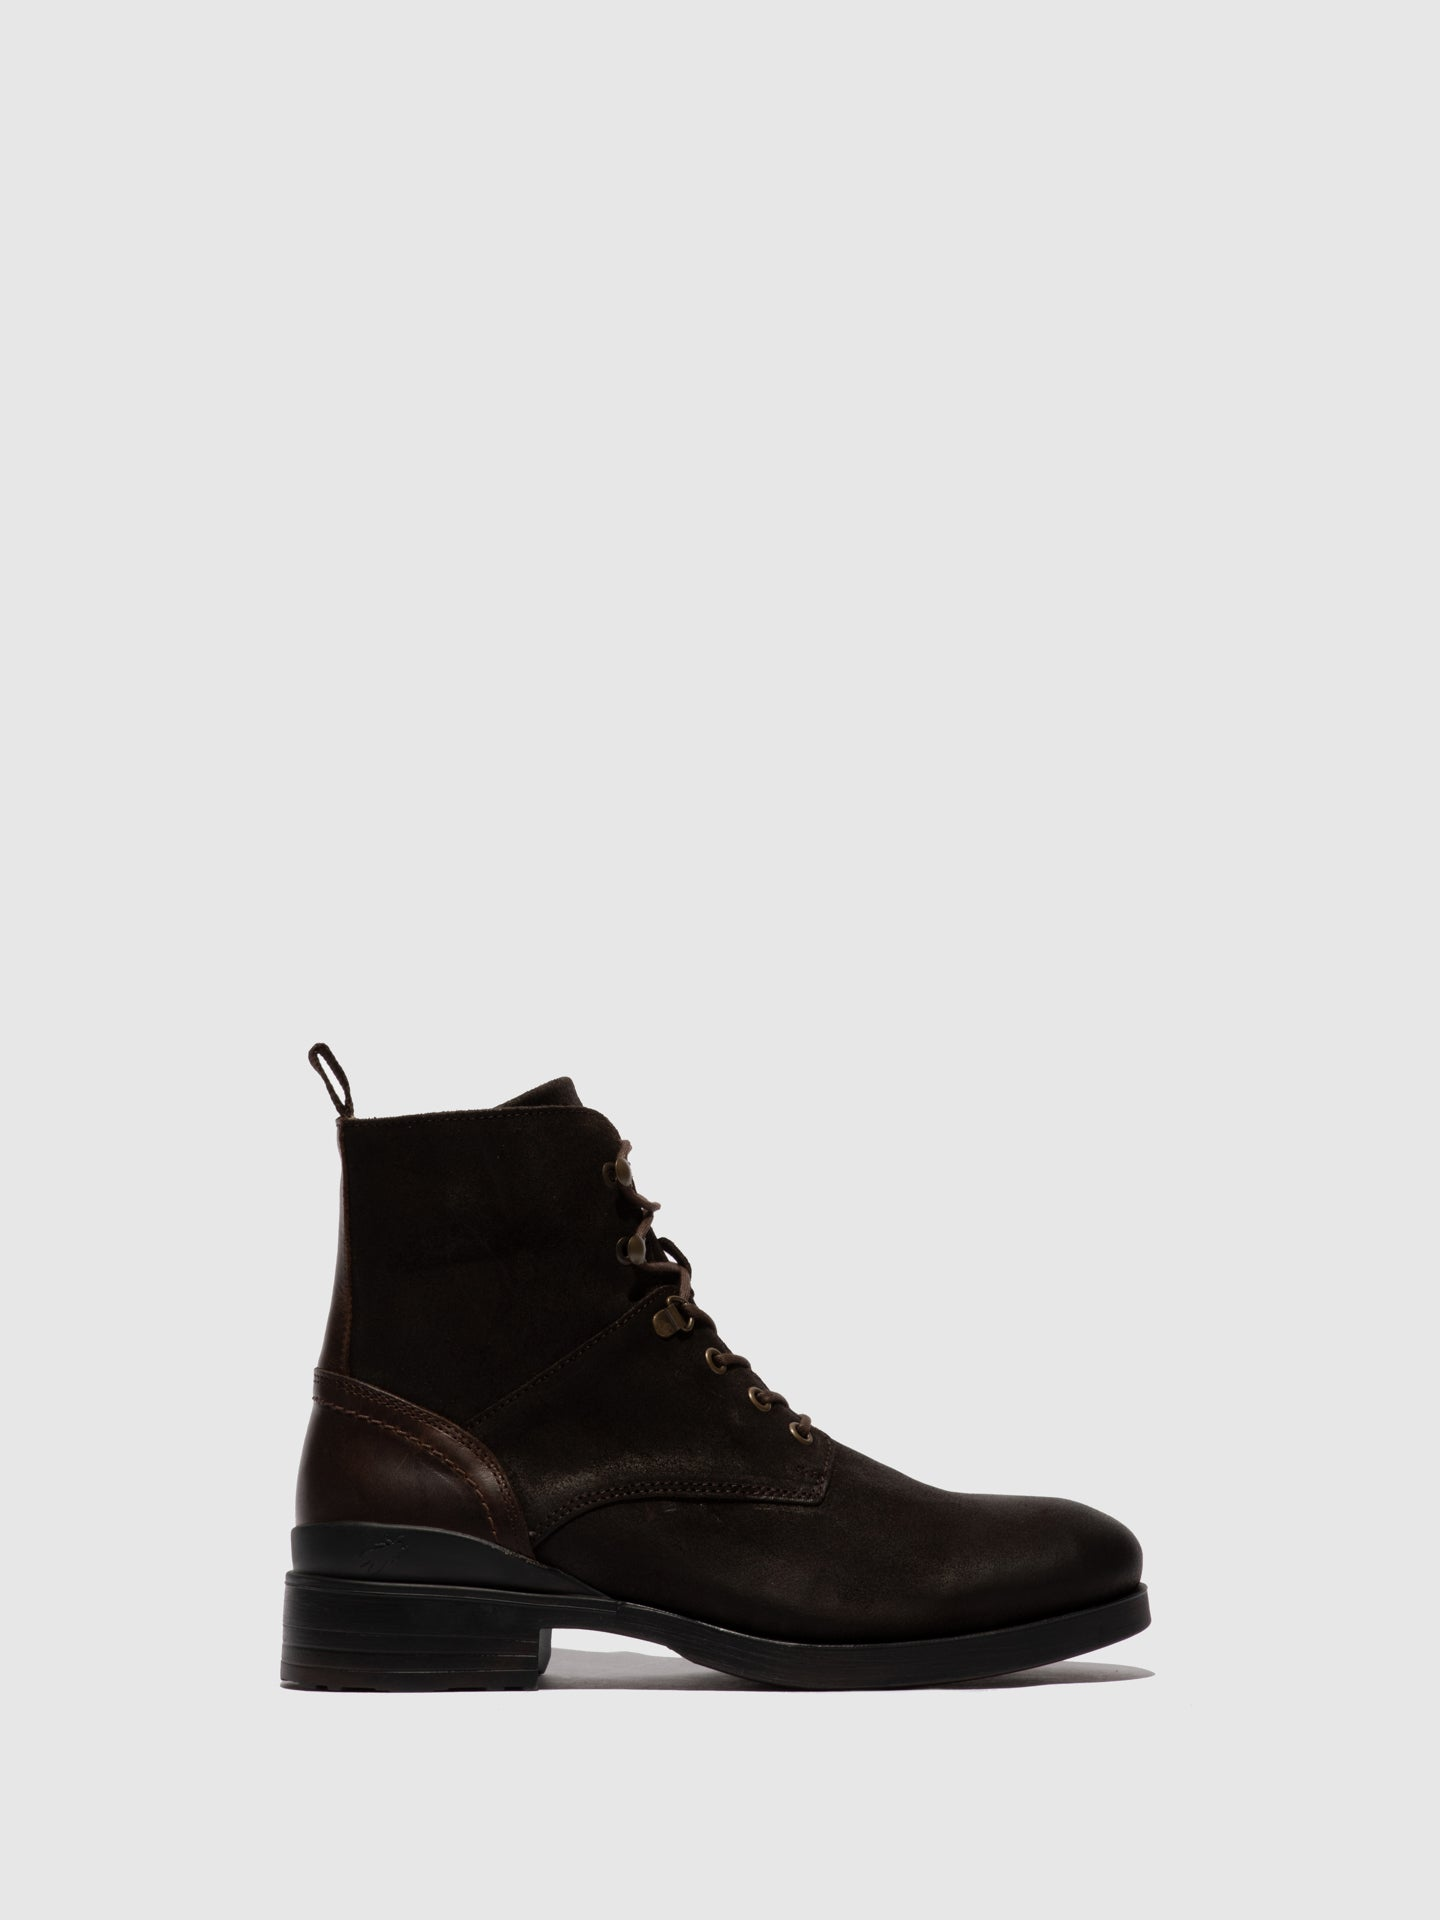 Fly London Lace-up Ankle Boots MOGO505FLY MOCA/DK.BROWN